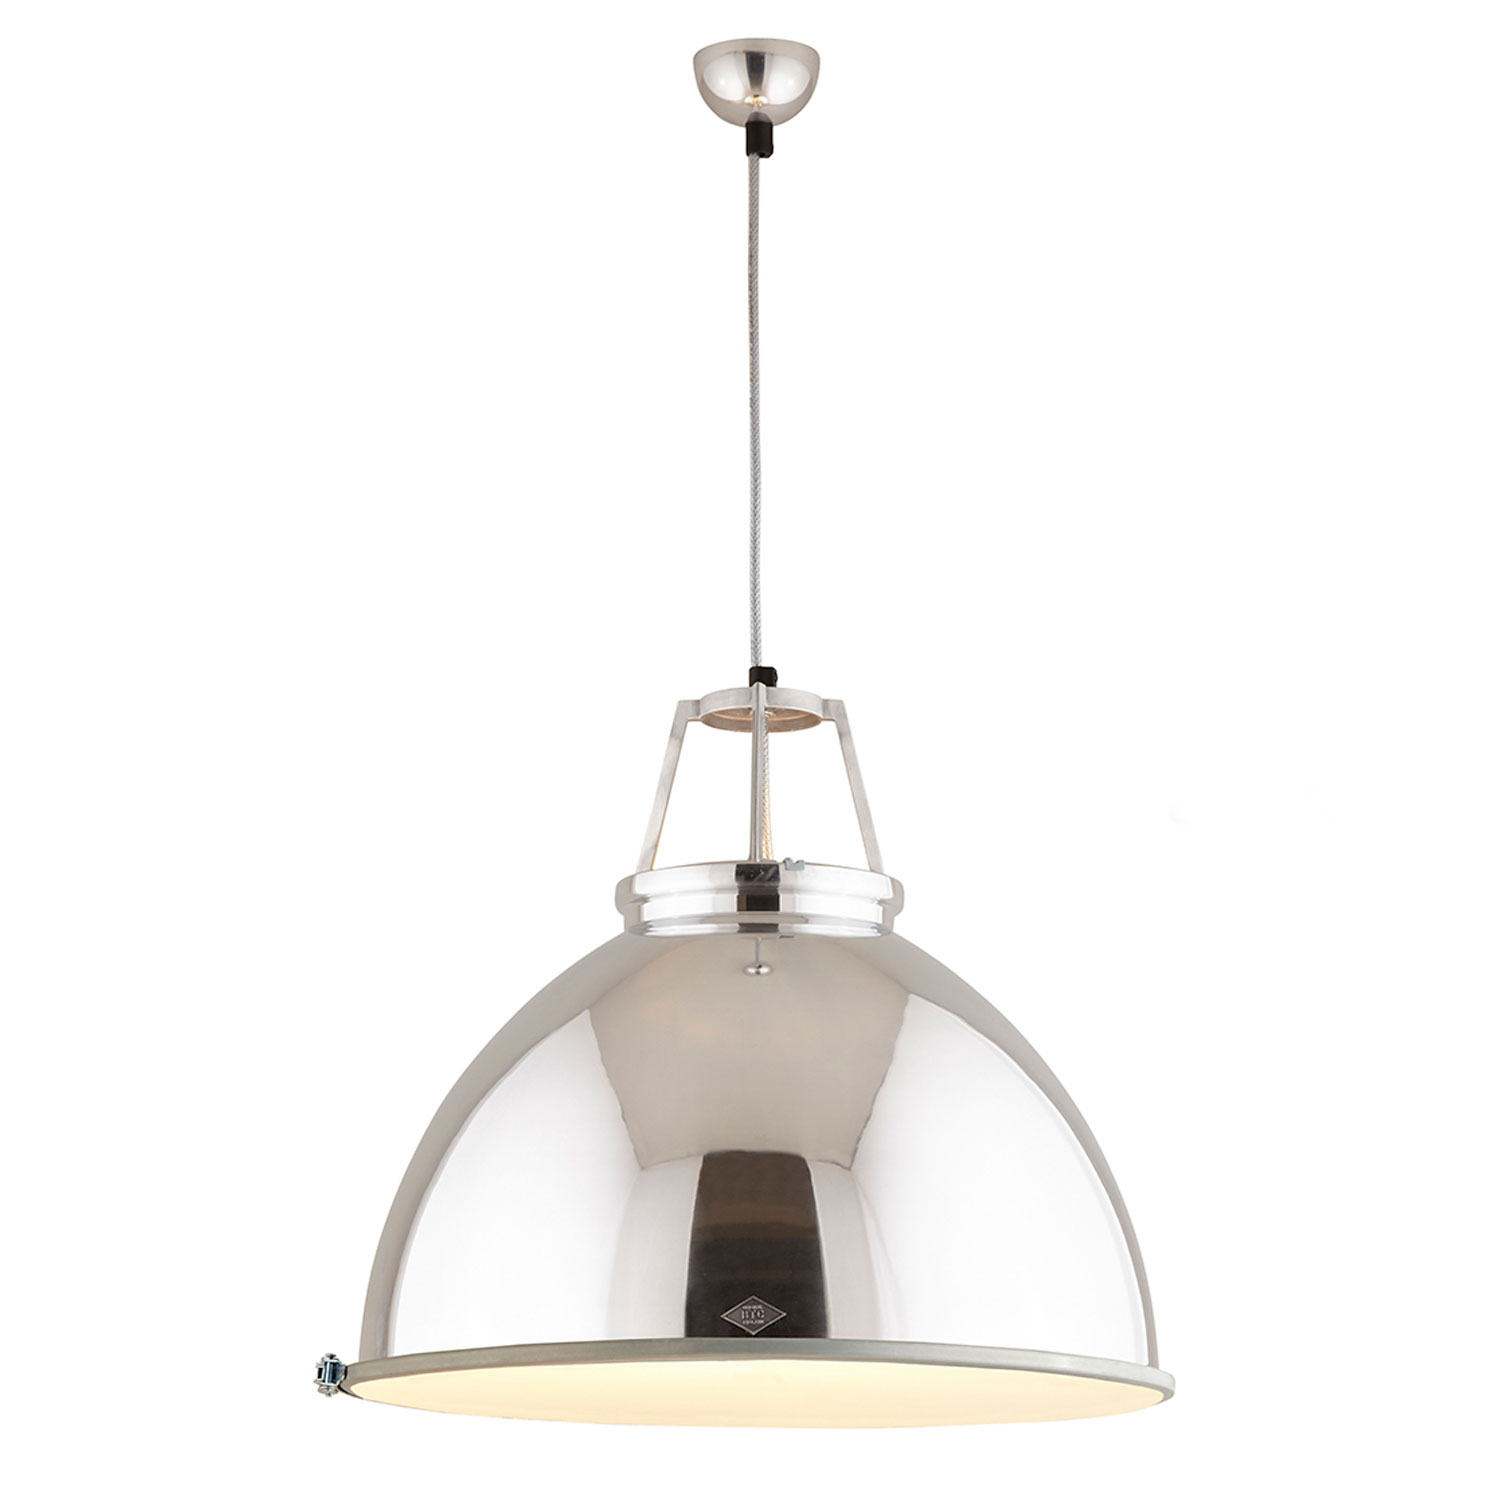 Titan Size 5 Pendant Light, Natural Aluminium with Etched Glass